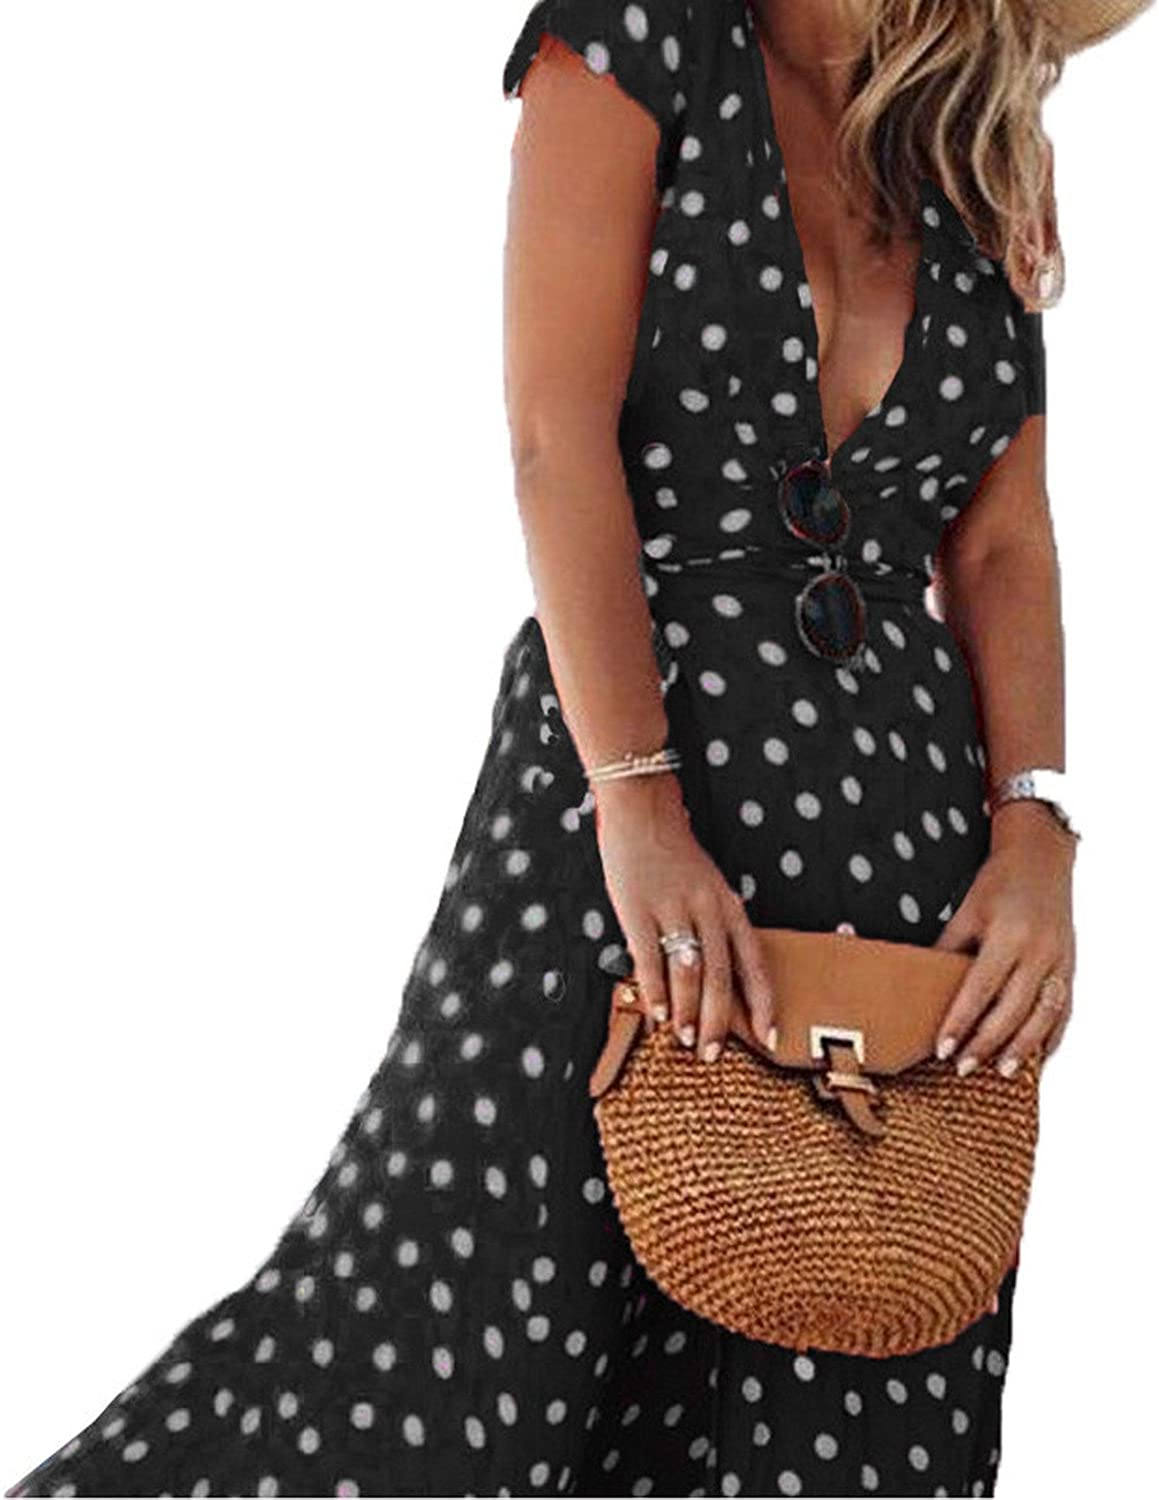 Summer Dress Women Polka Dot Deep V Neck Short Sleeve Split Party Beach Maxi Long Dress Sundress Plus Size